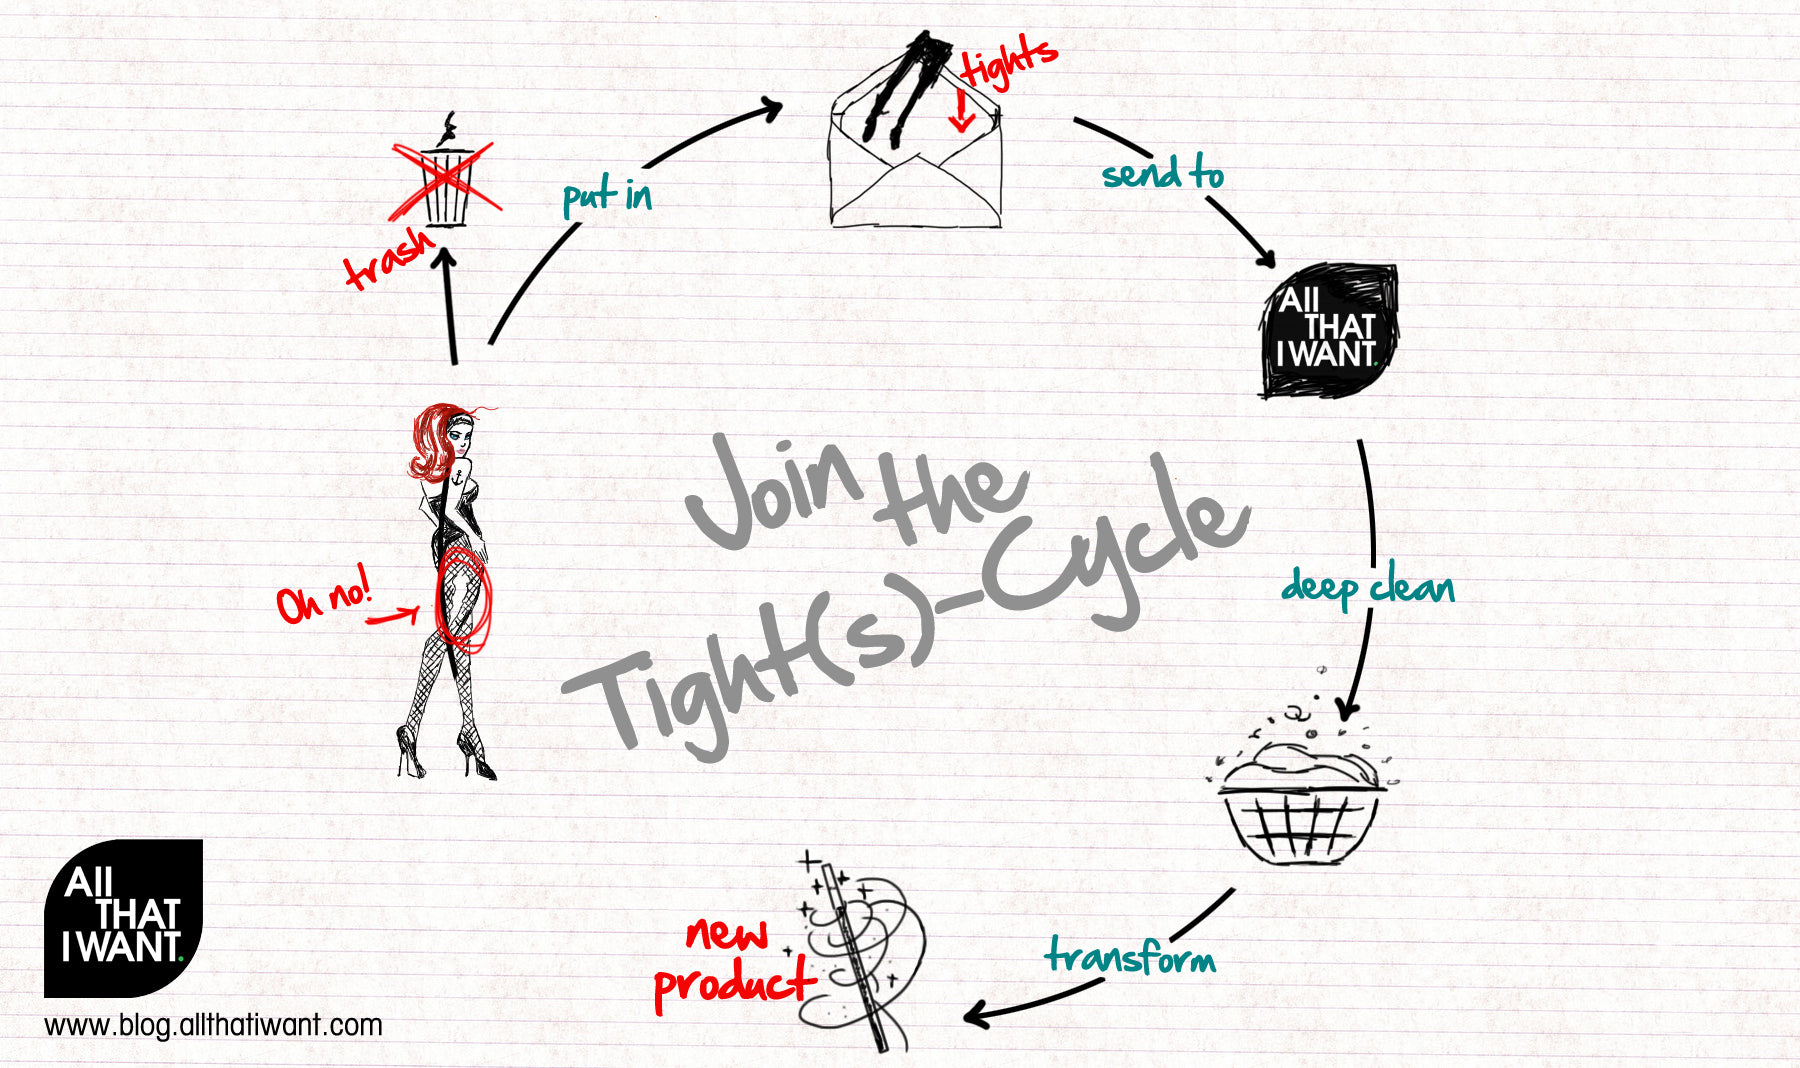 The story of the tight (s) cycle